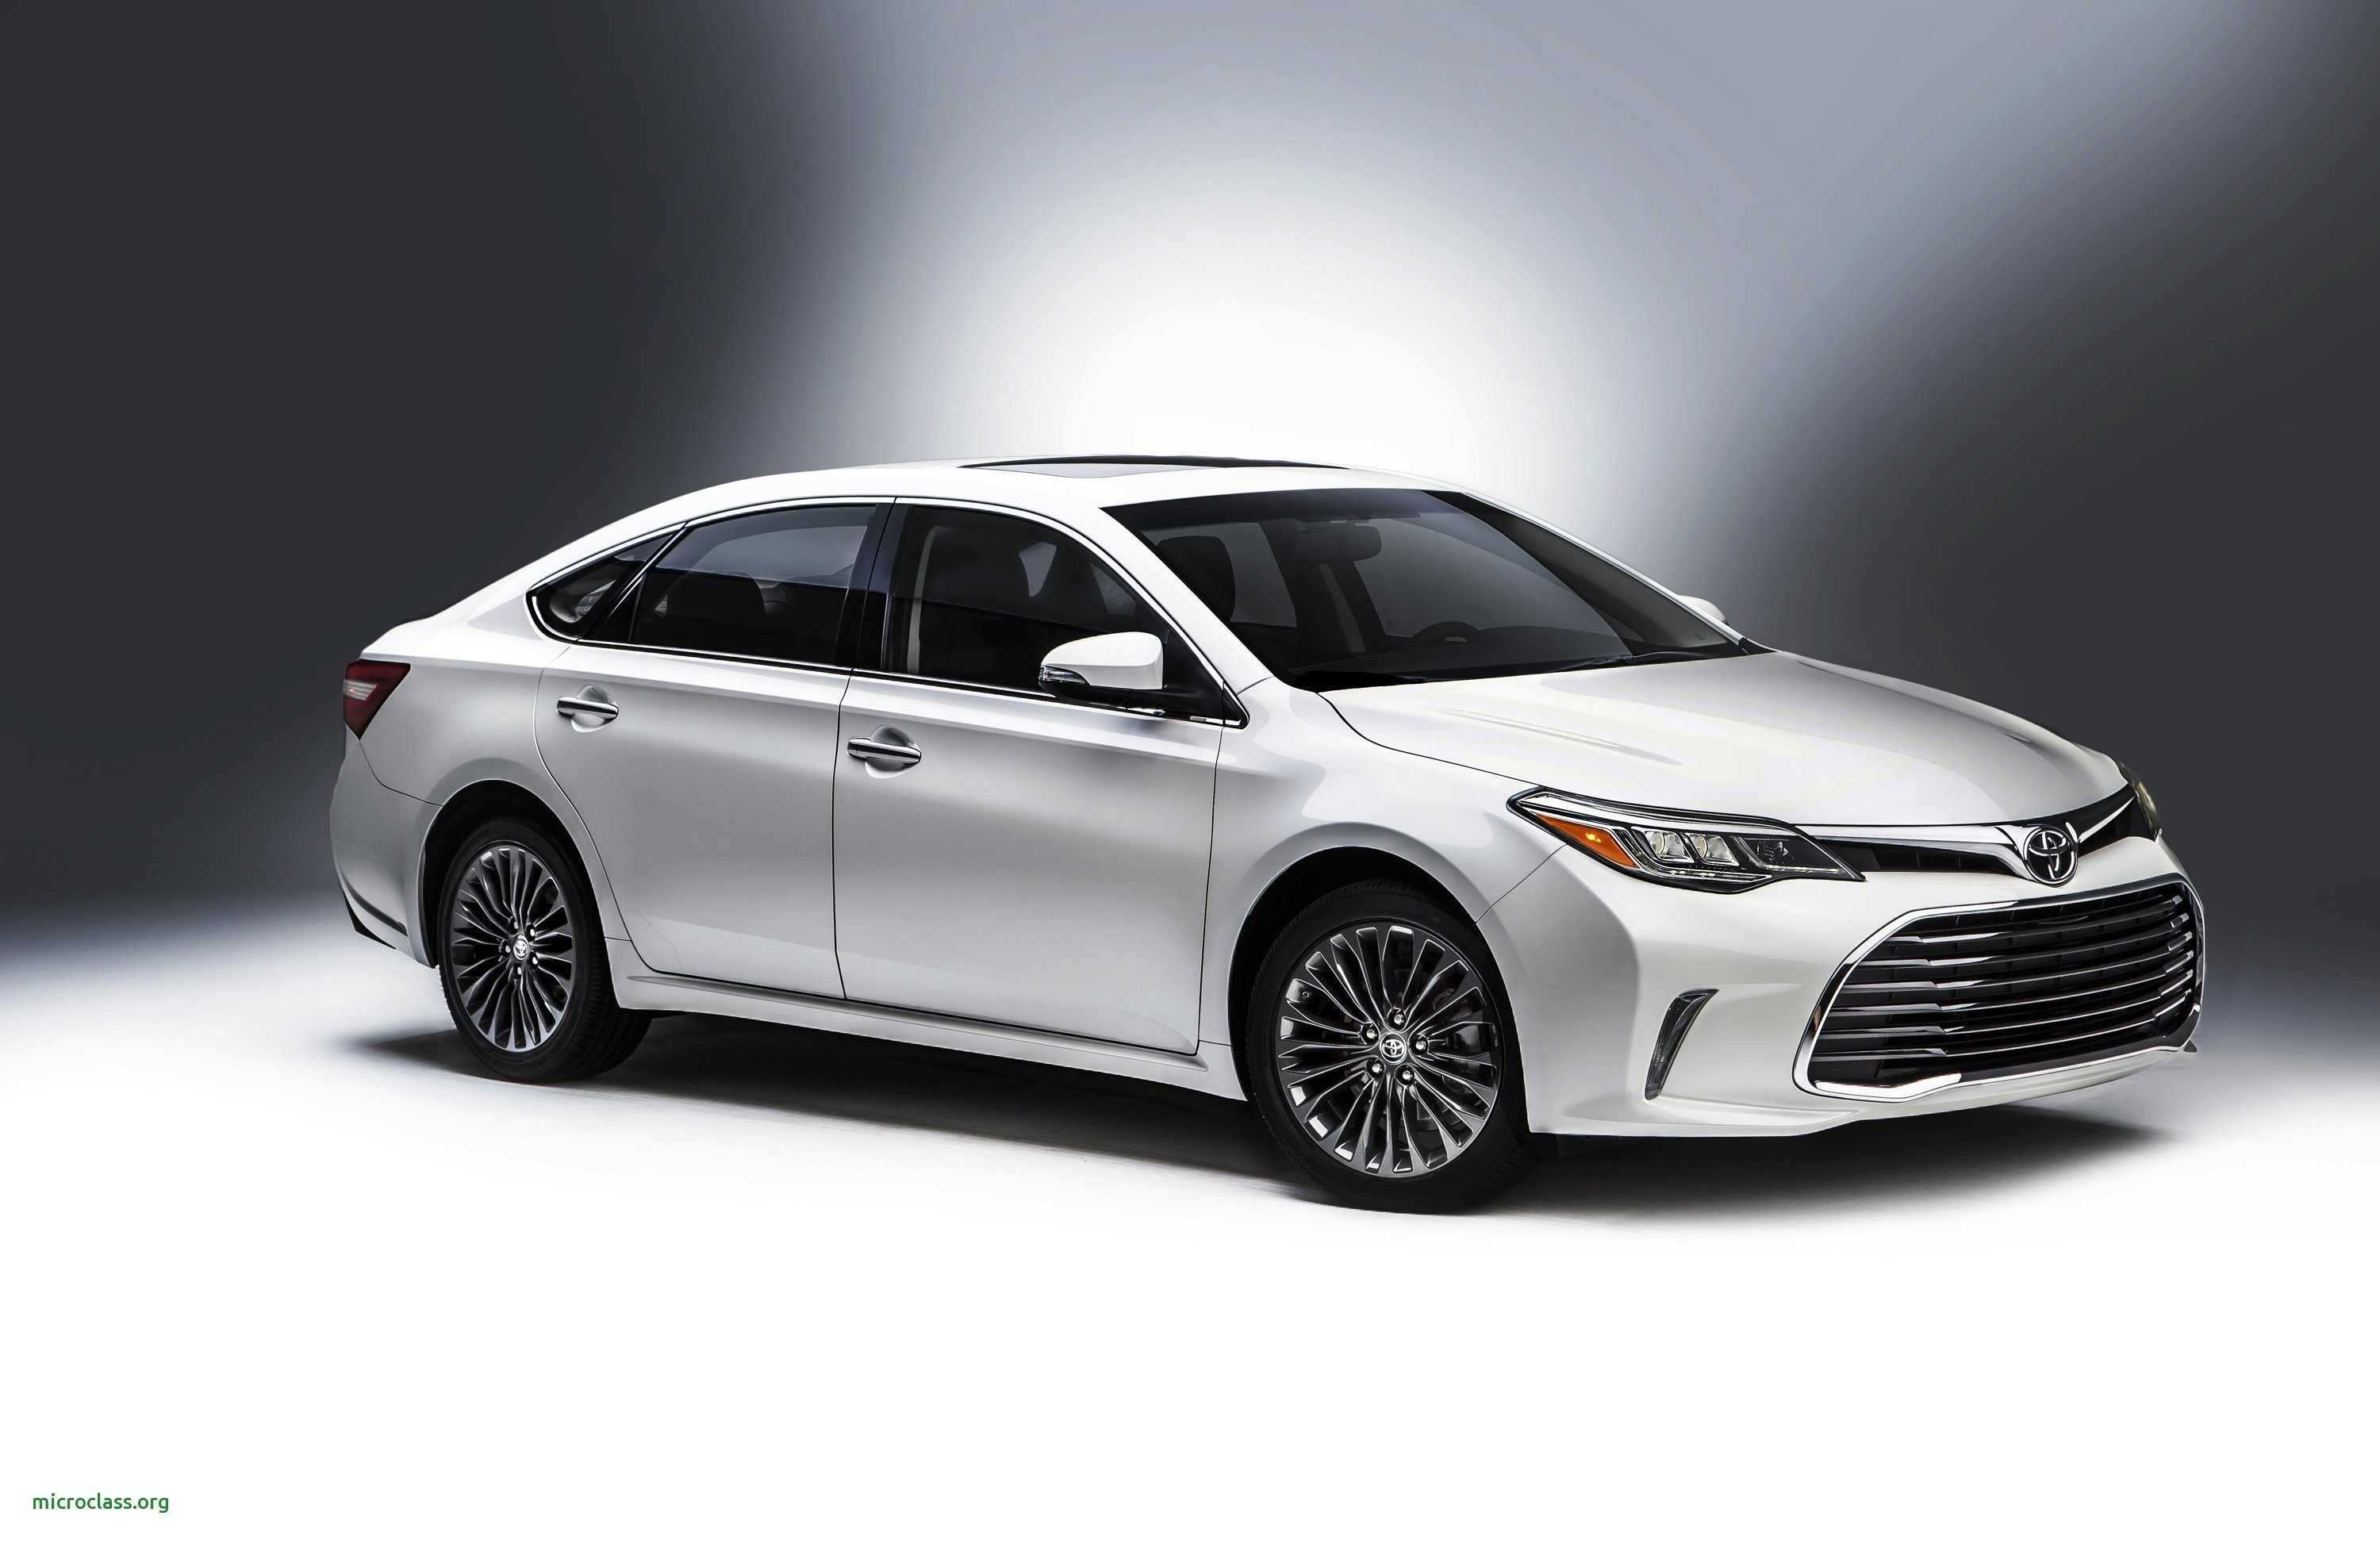 42 Great Avalon Toyota 2020 New Concept Review with Avalon Toyota 2020 New Concept